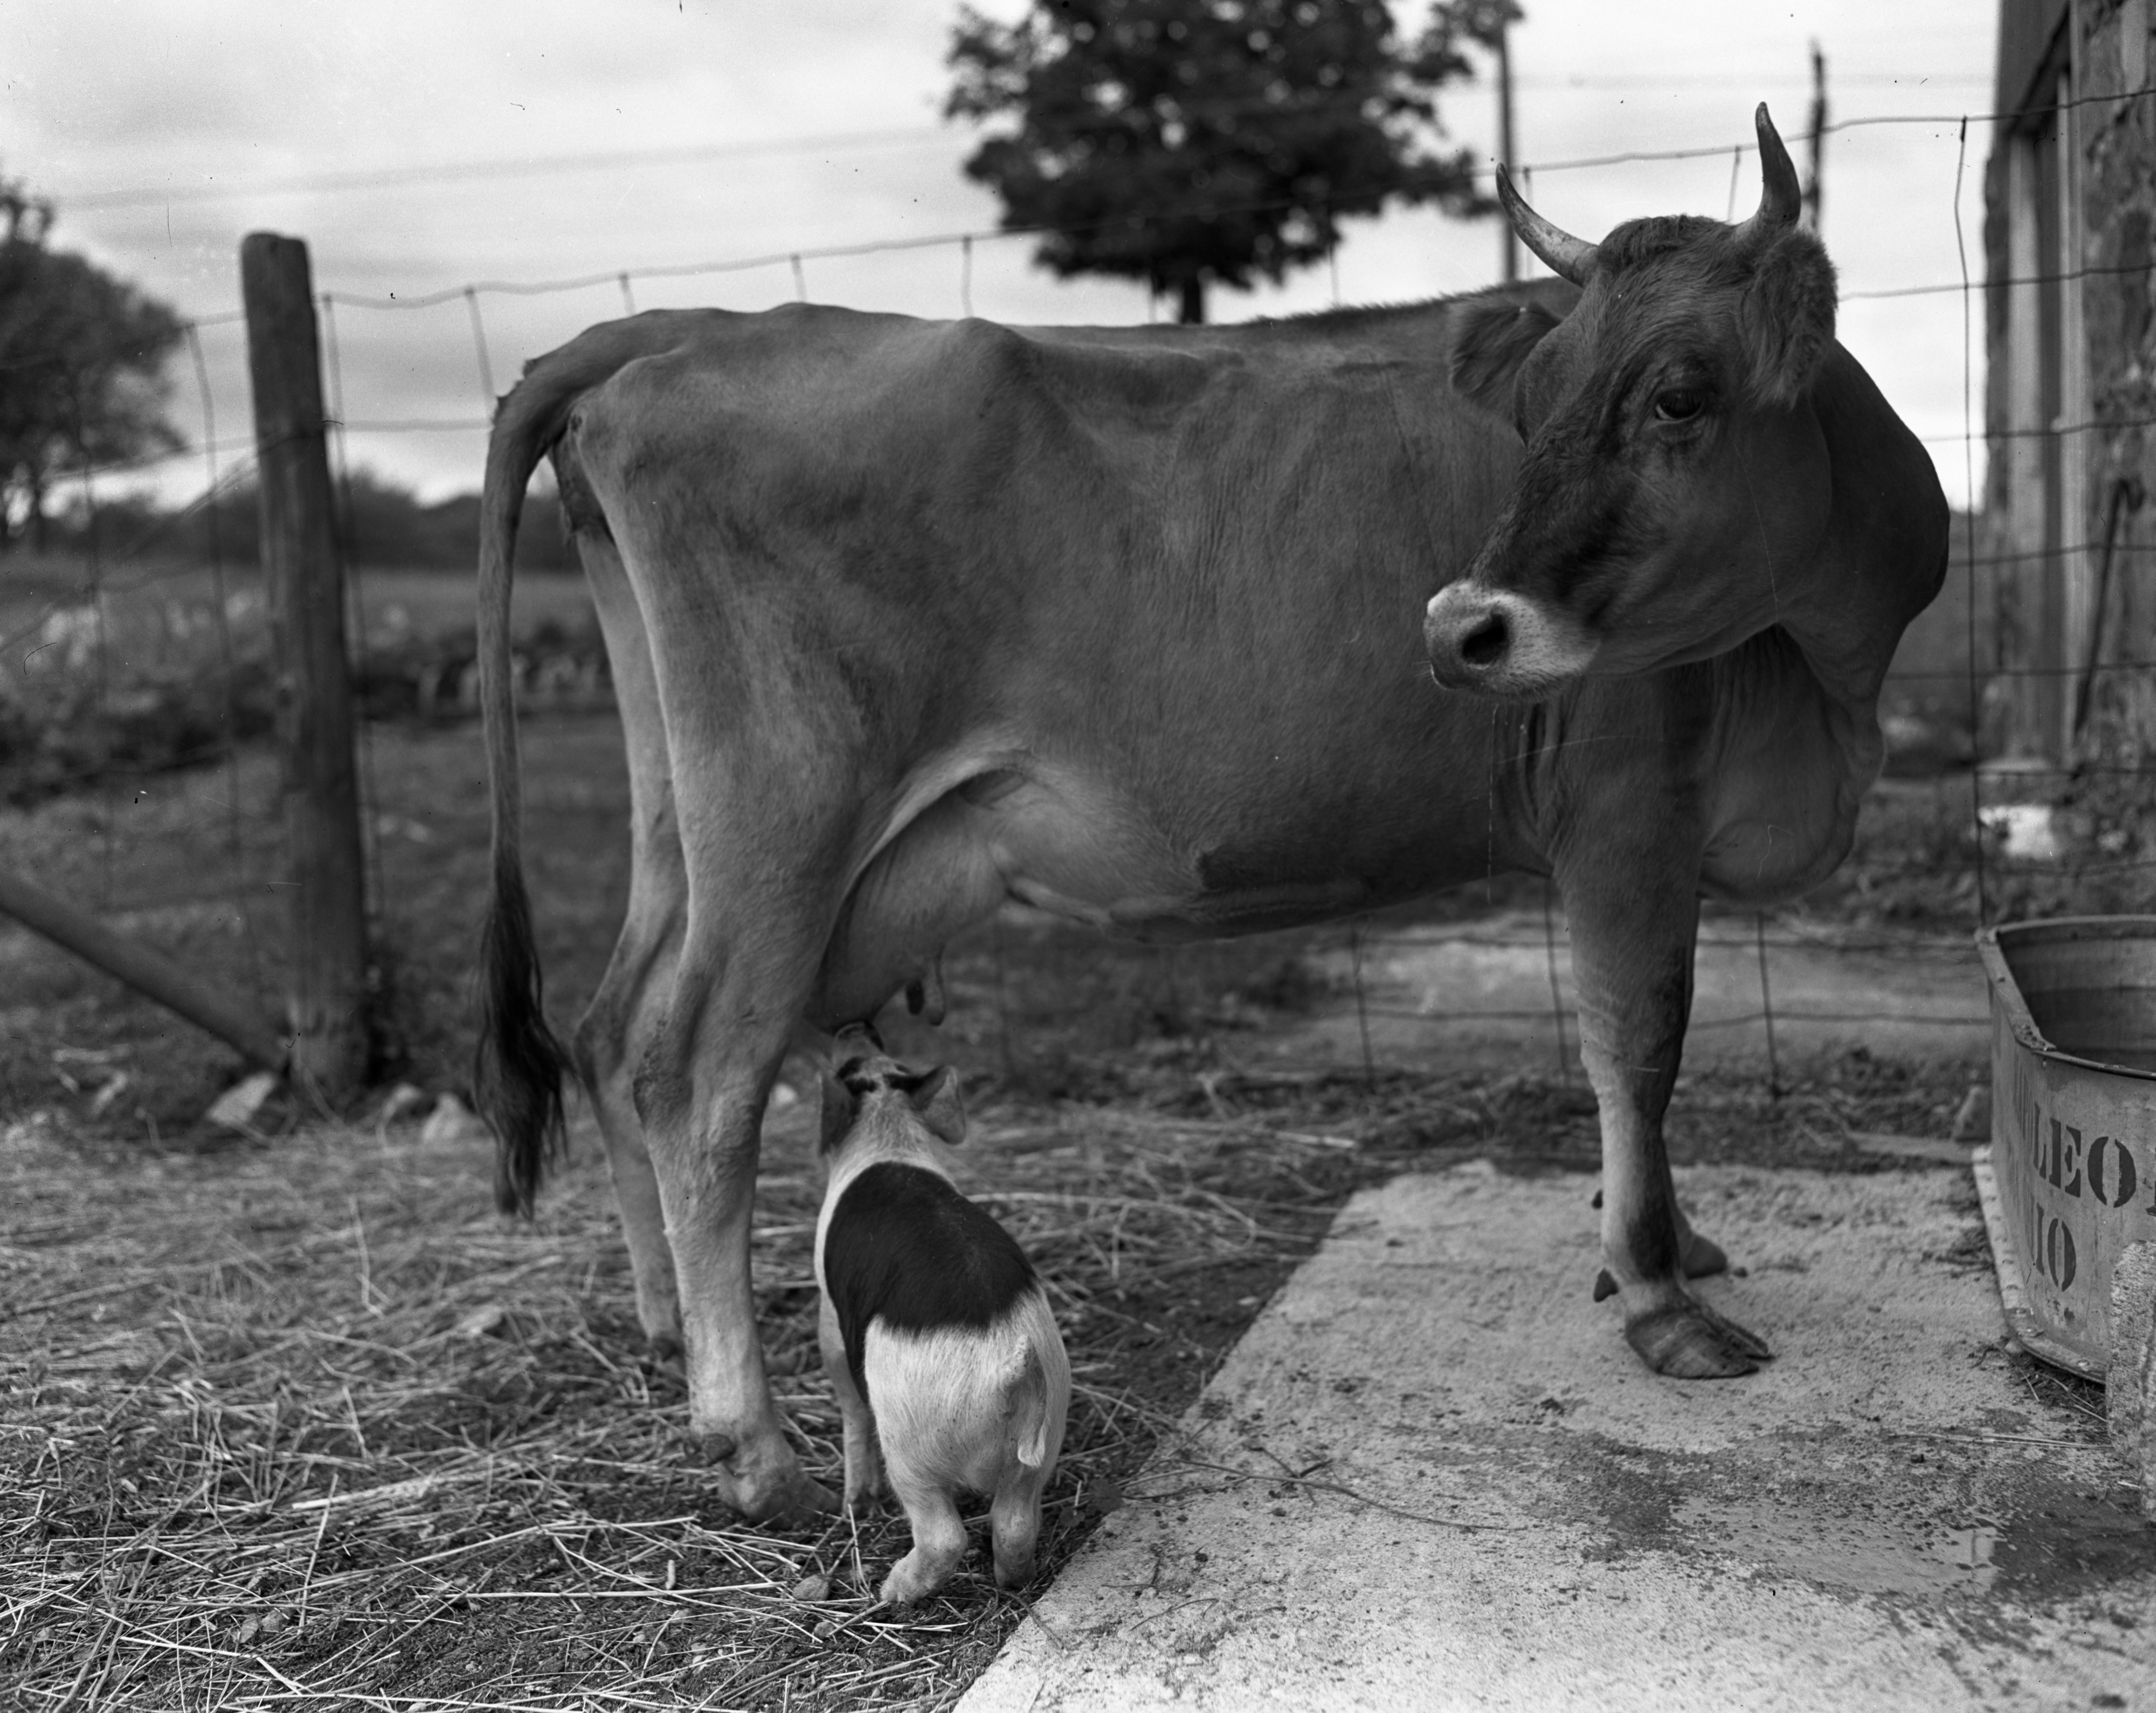 Cow suckling a pig on the Braun Farm, N. Main St., August 1946 image